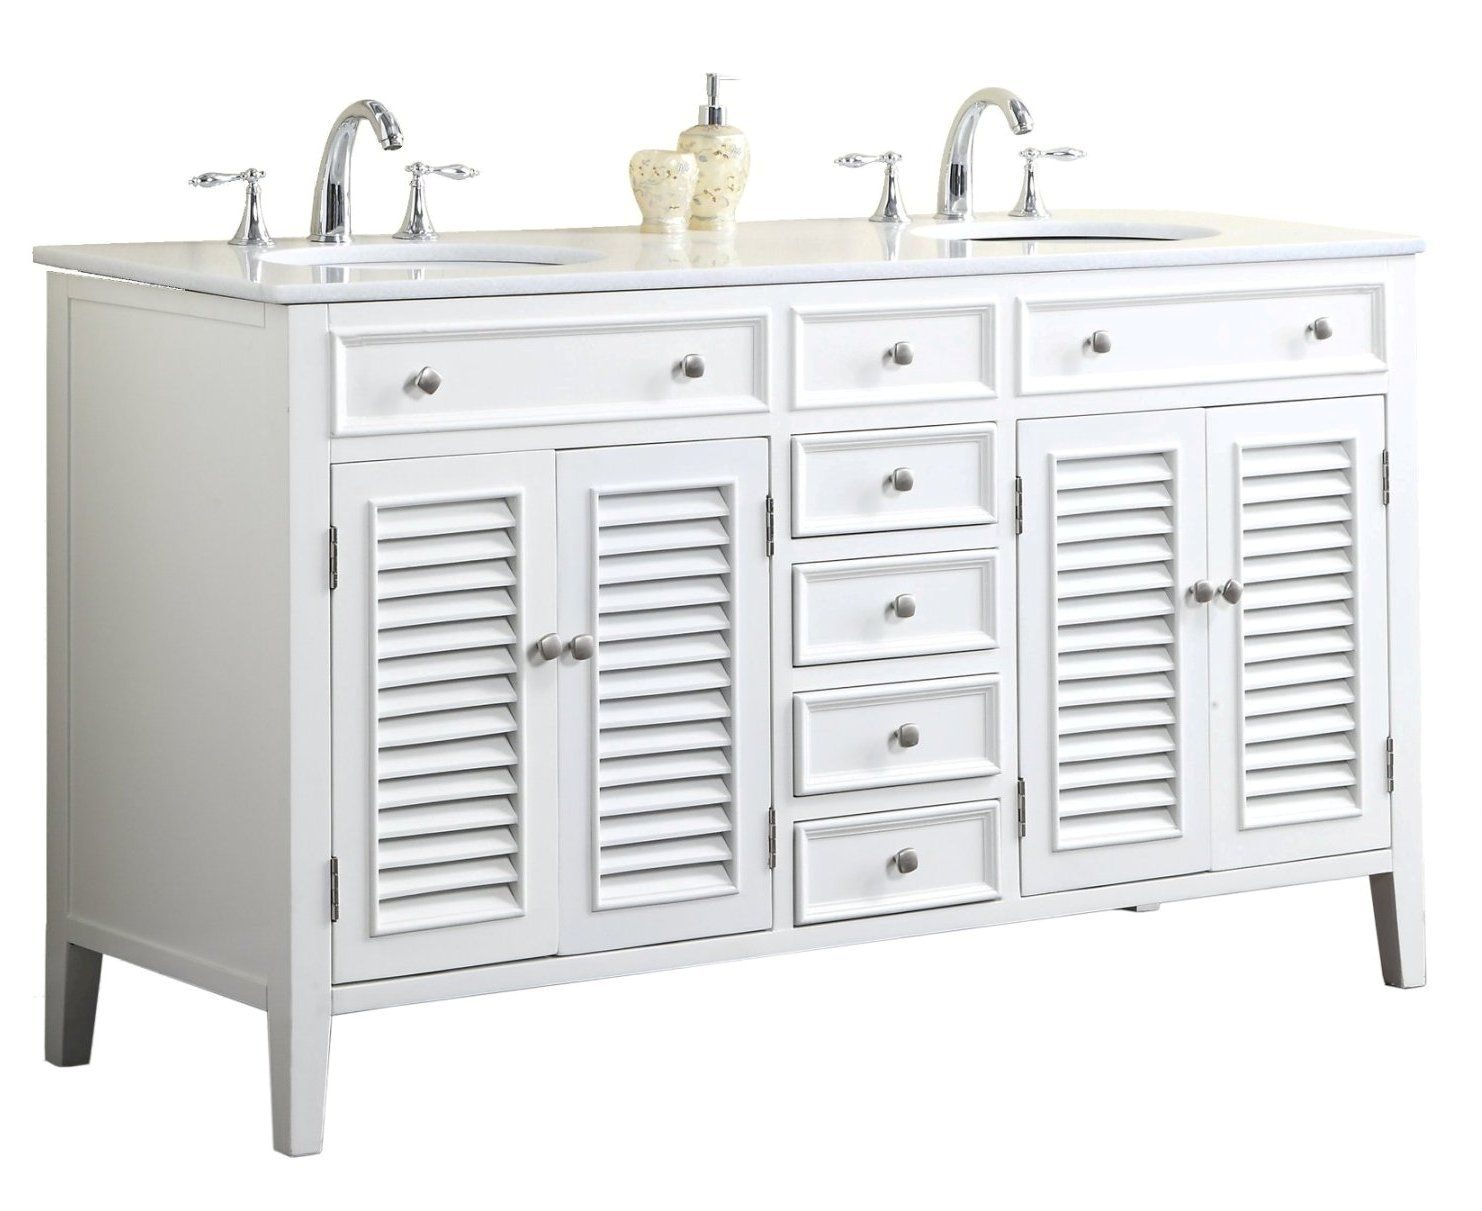 Functional And Stylish, The Cottage Style Keri Sink Cabinet Is The Perfect  Place To Store